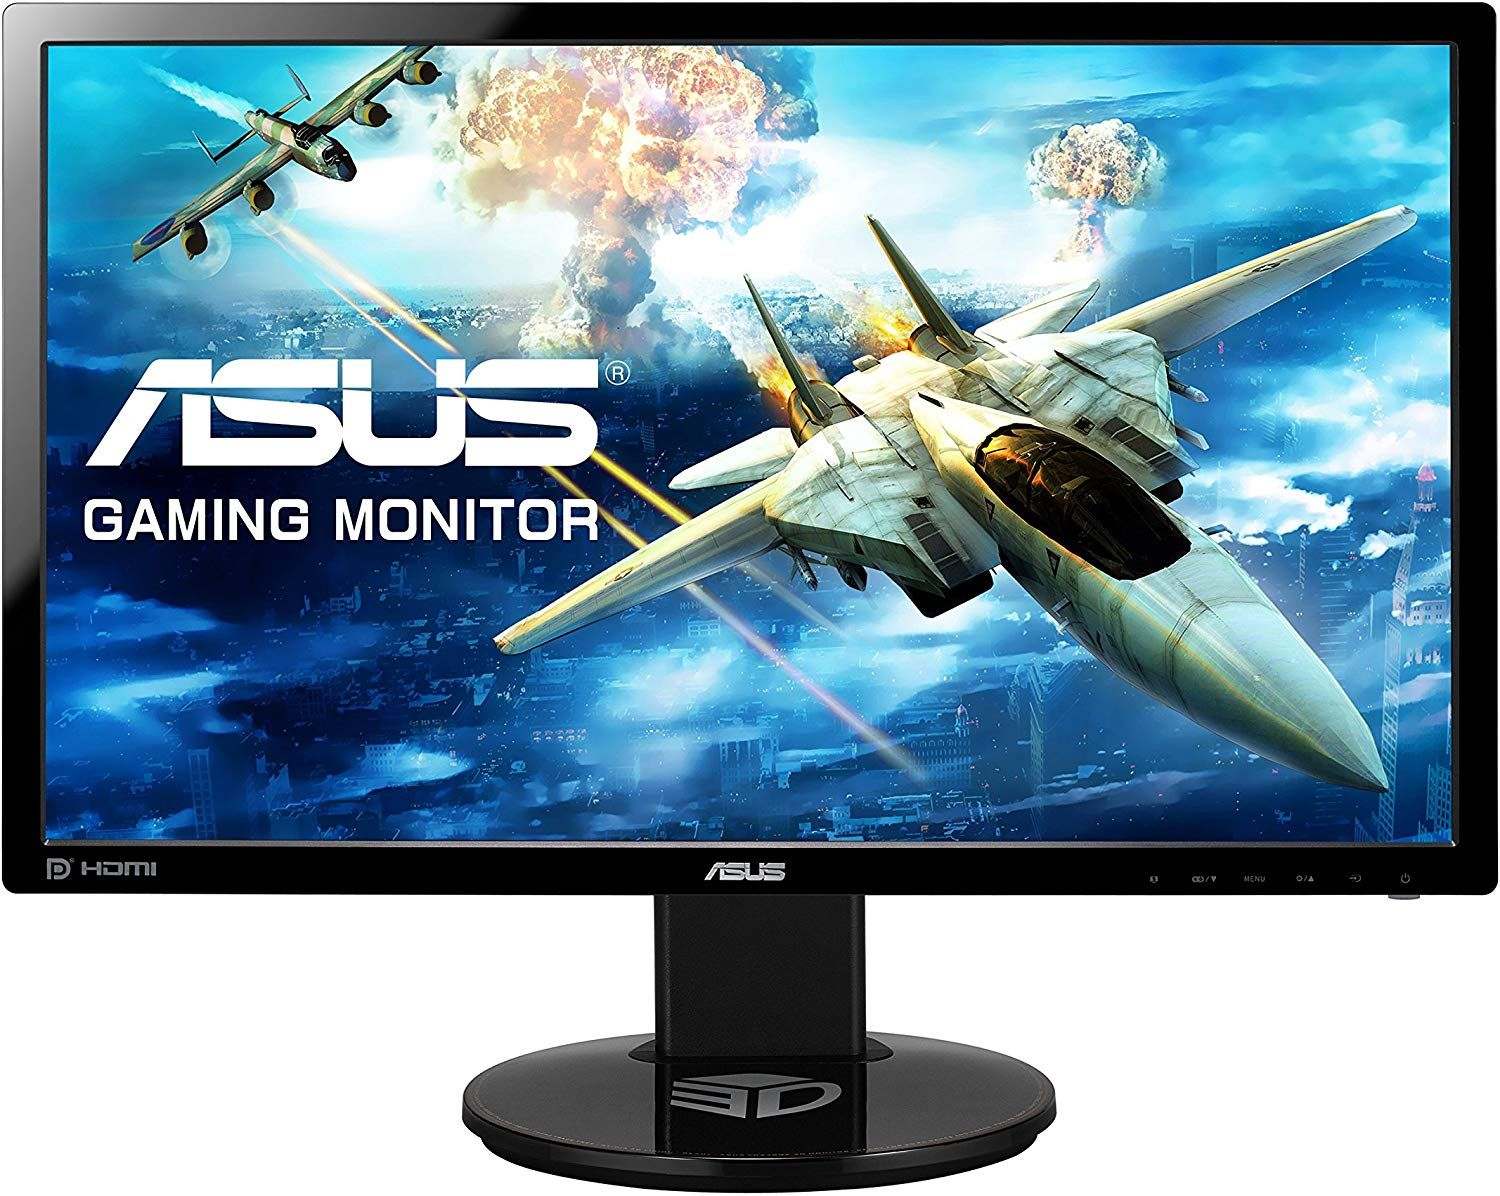 Asus Vg248qe 24 Inch Fhd 1920 X 1080 Gaming Monitor 1 Ms Up To 144 Hz Dp Hdmi Dvi D Amazon Co Uk Computers Accessories Monitor Asus Lcd Monitor